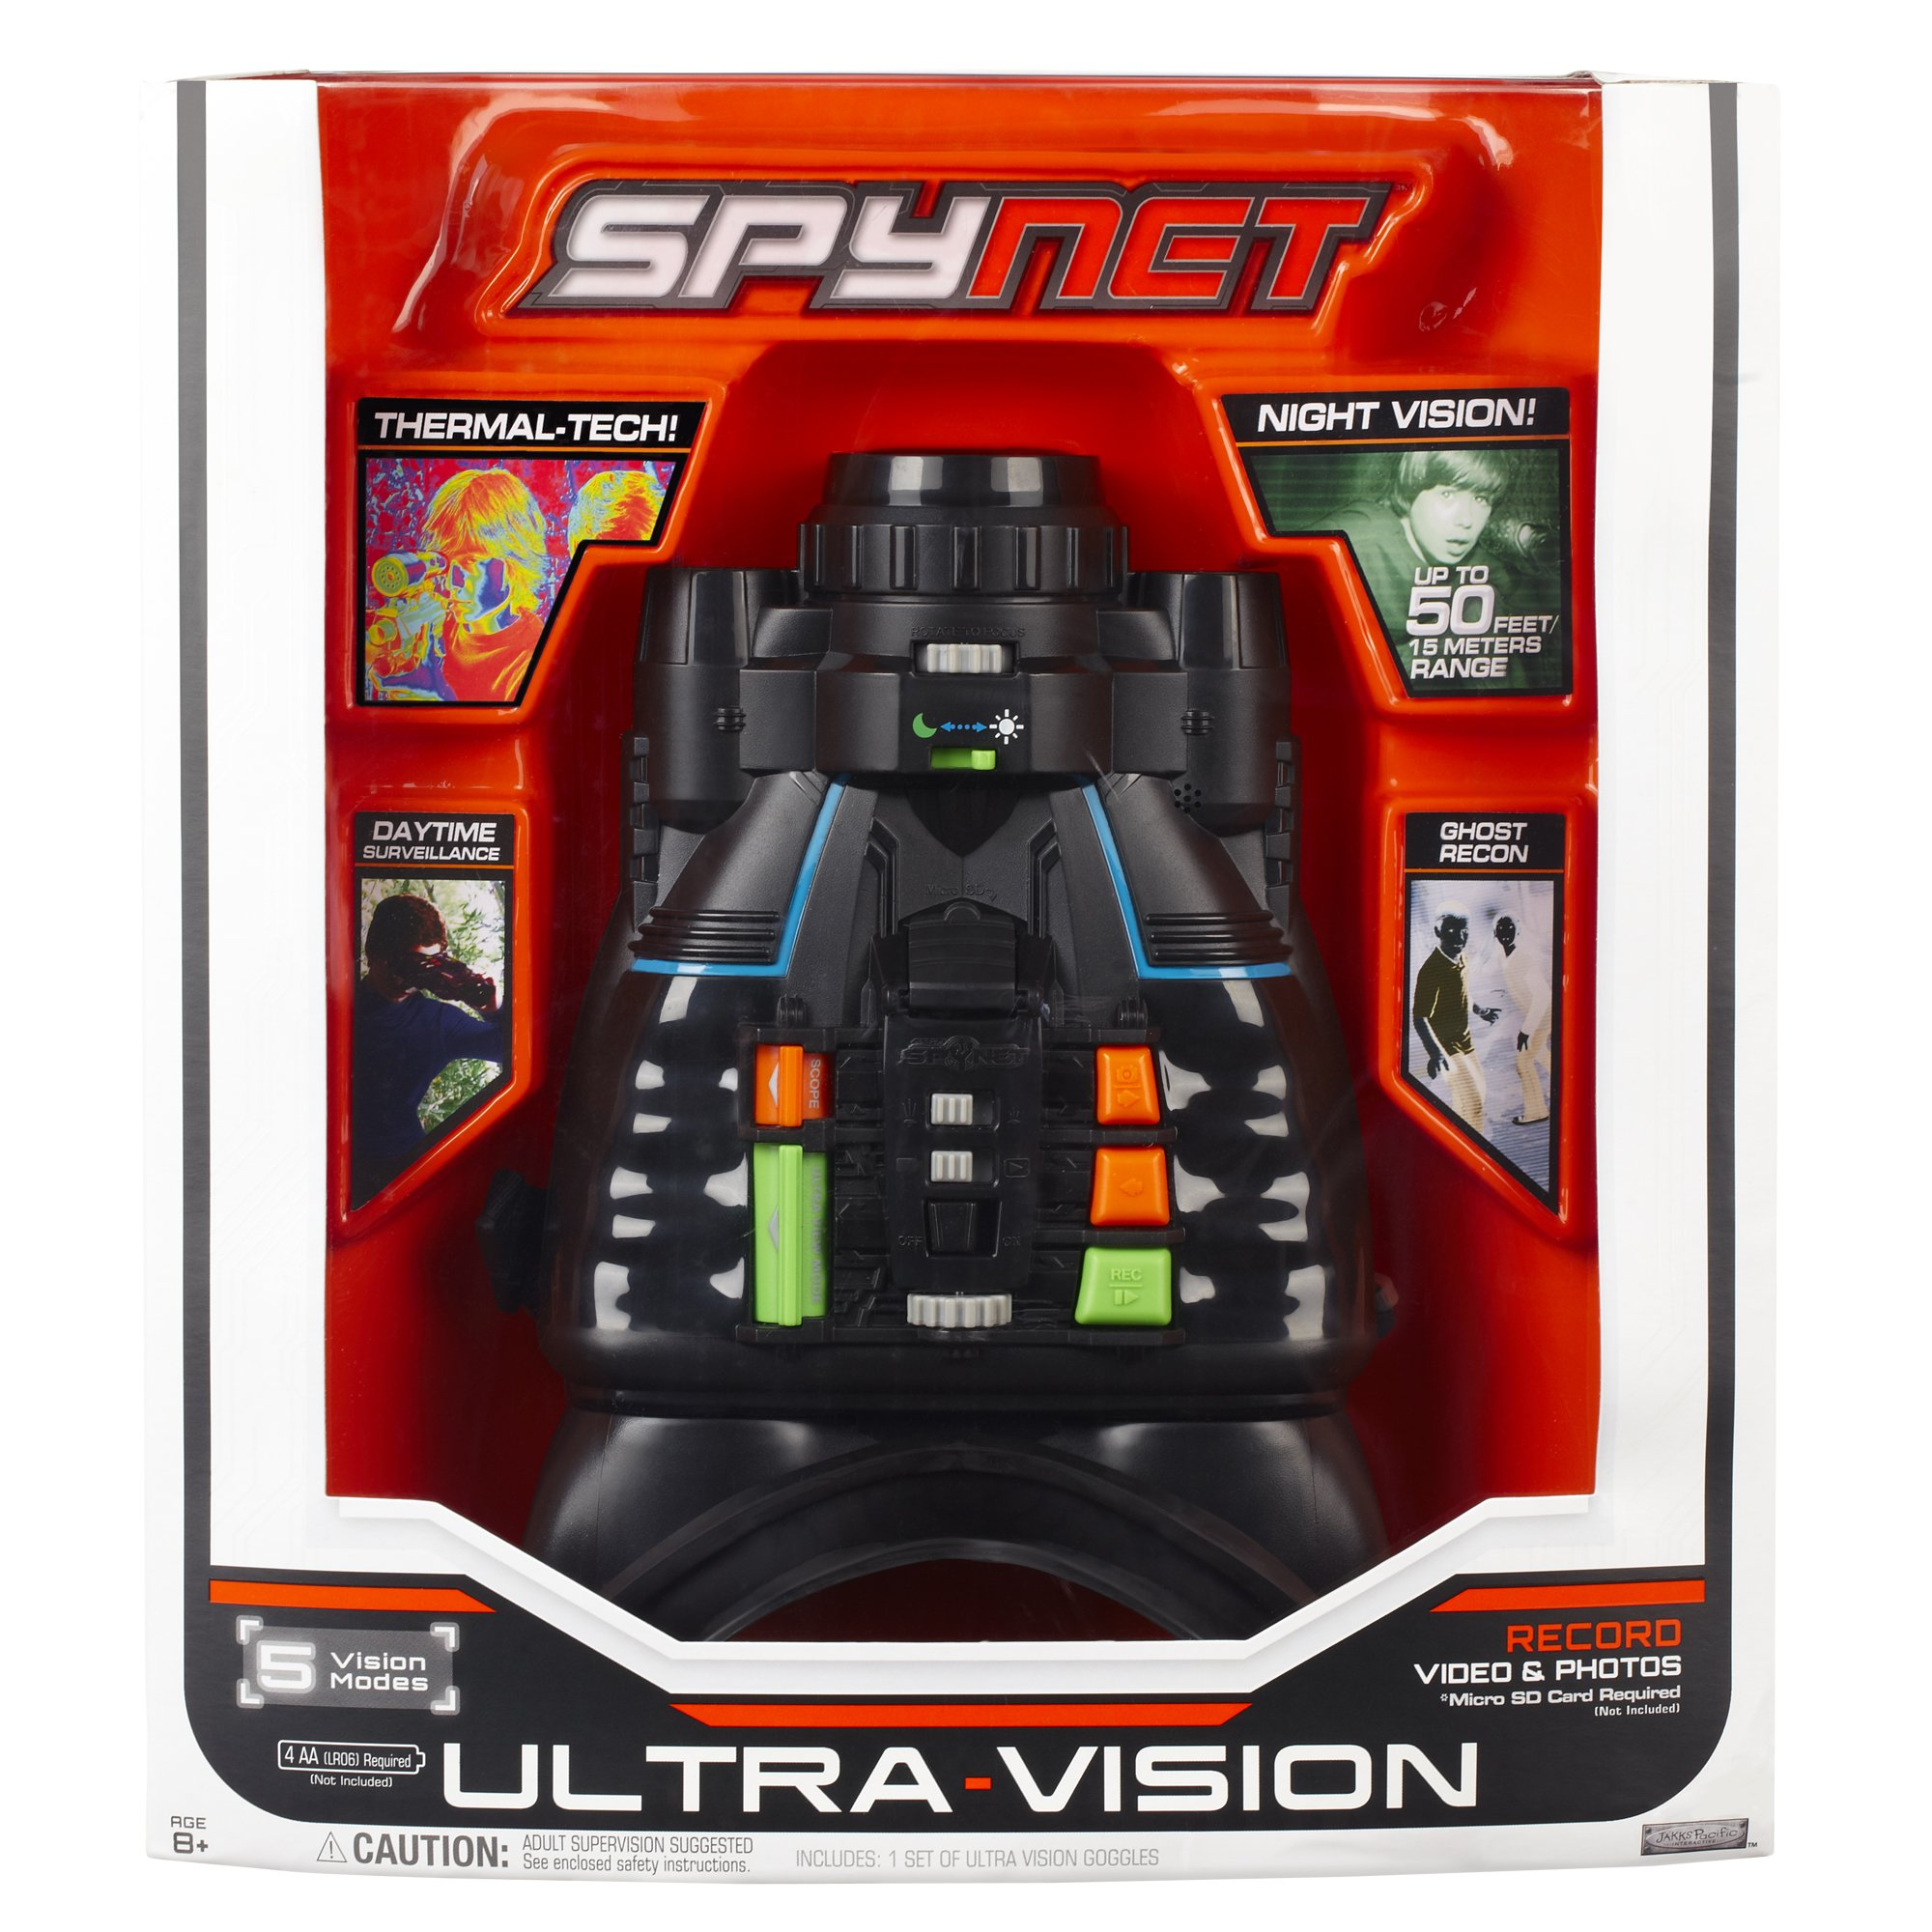 672ebd98cf626 Amazon.com  SpyNet Ultra Vision Goggles with 5 Vision Modes by Jakks  Pacific  Toys   Games